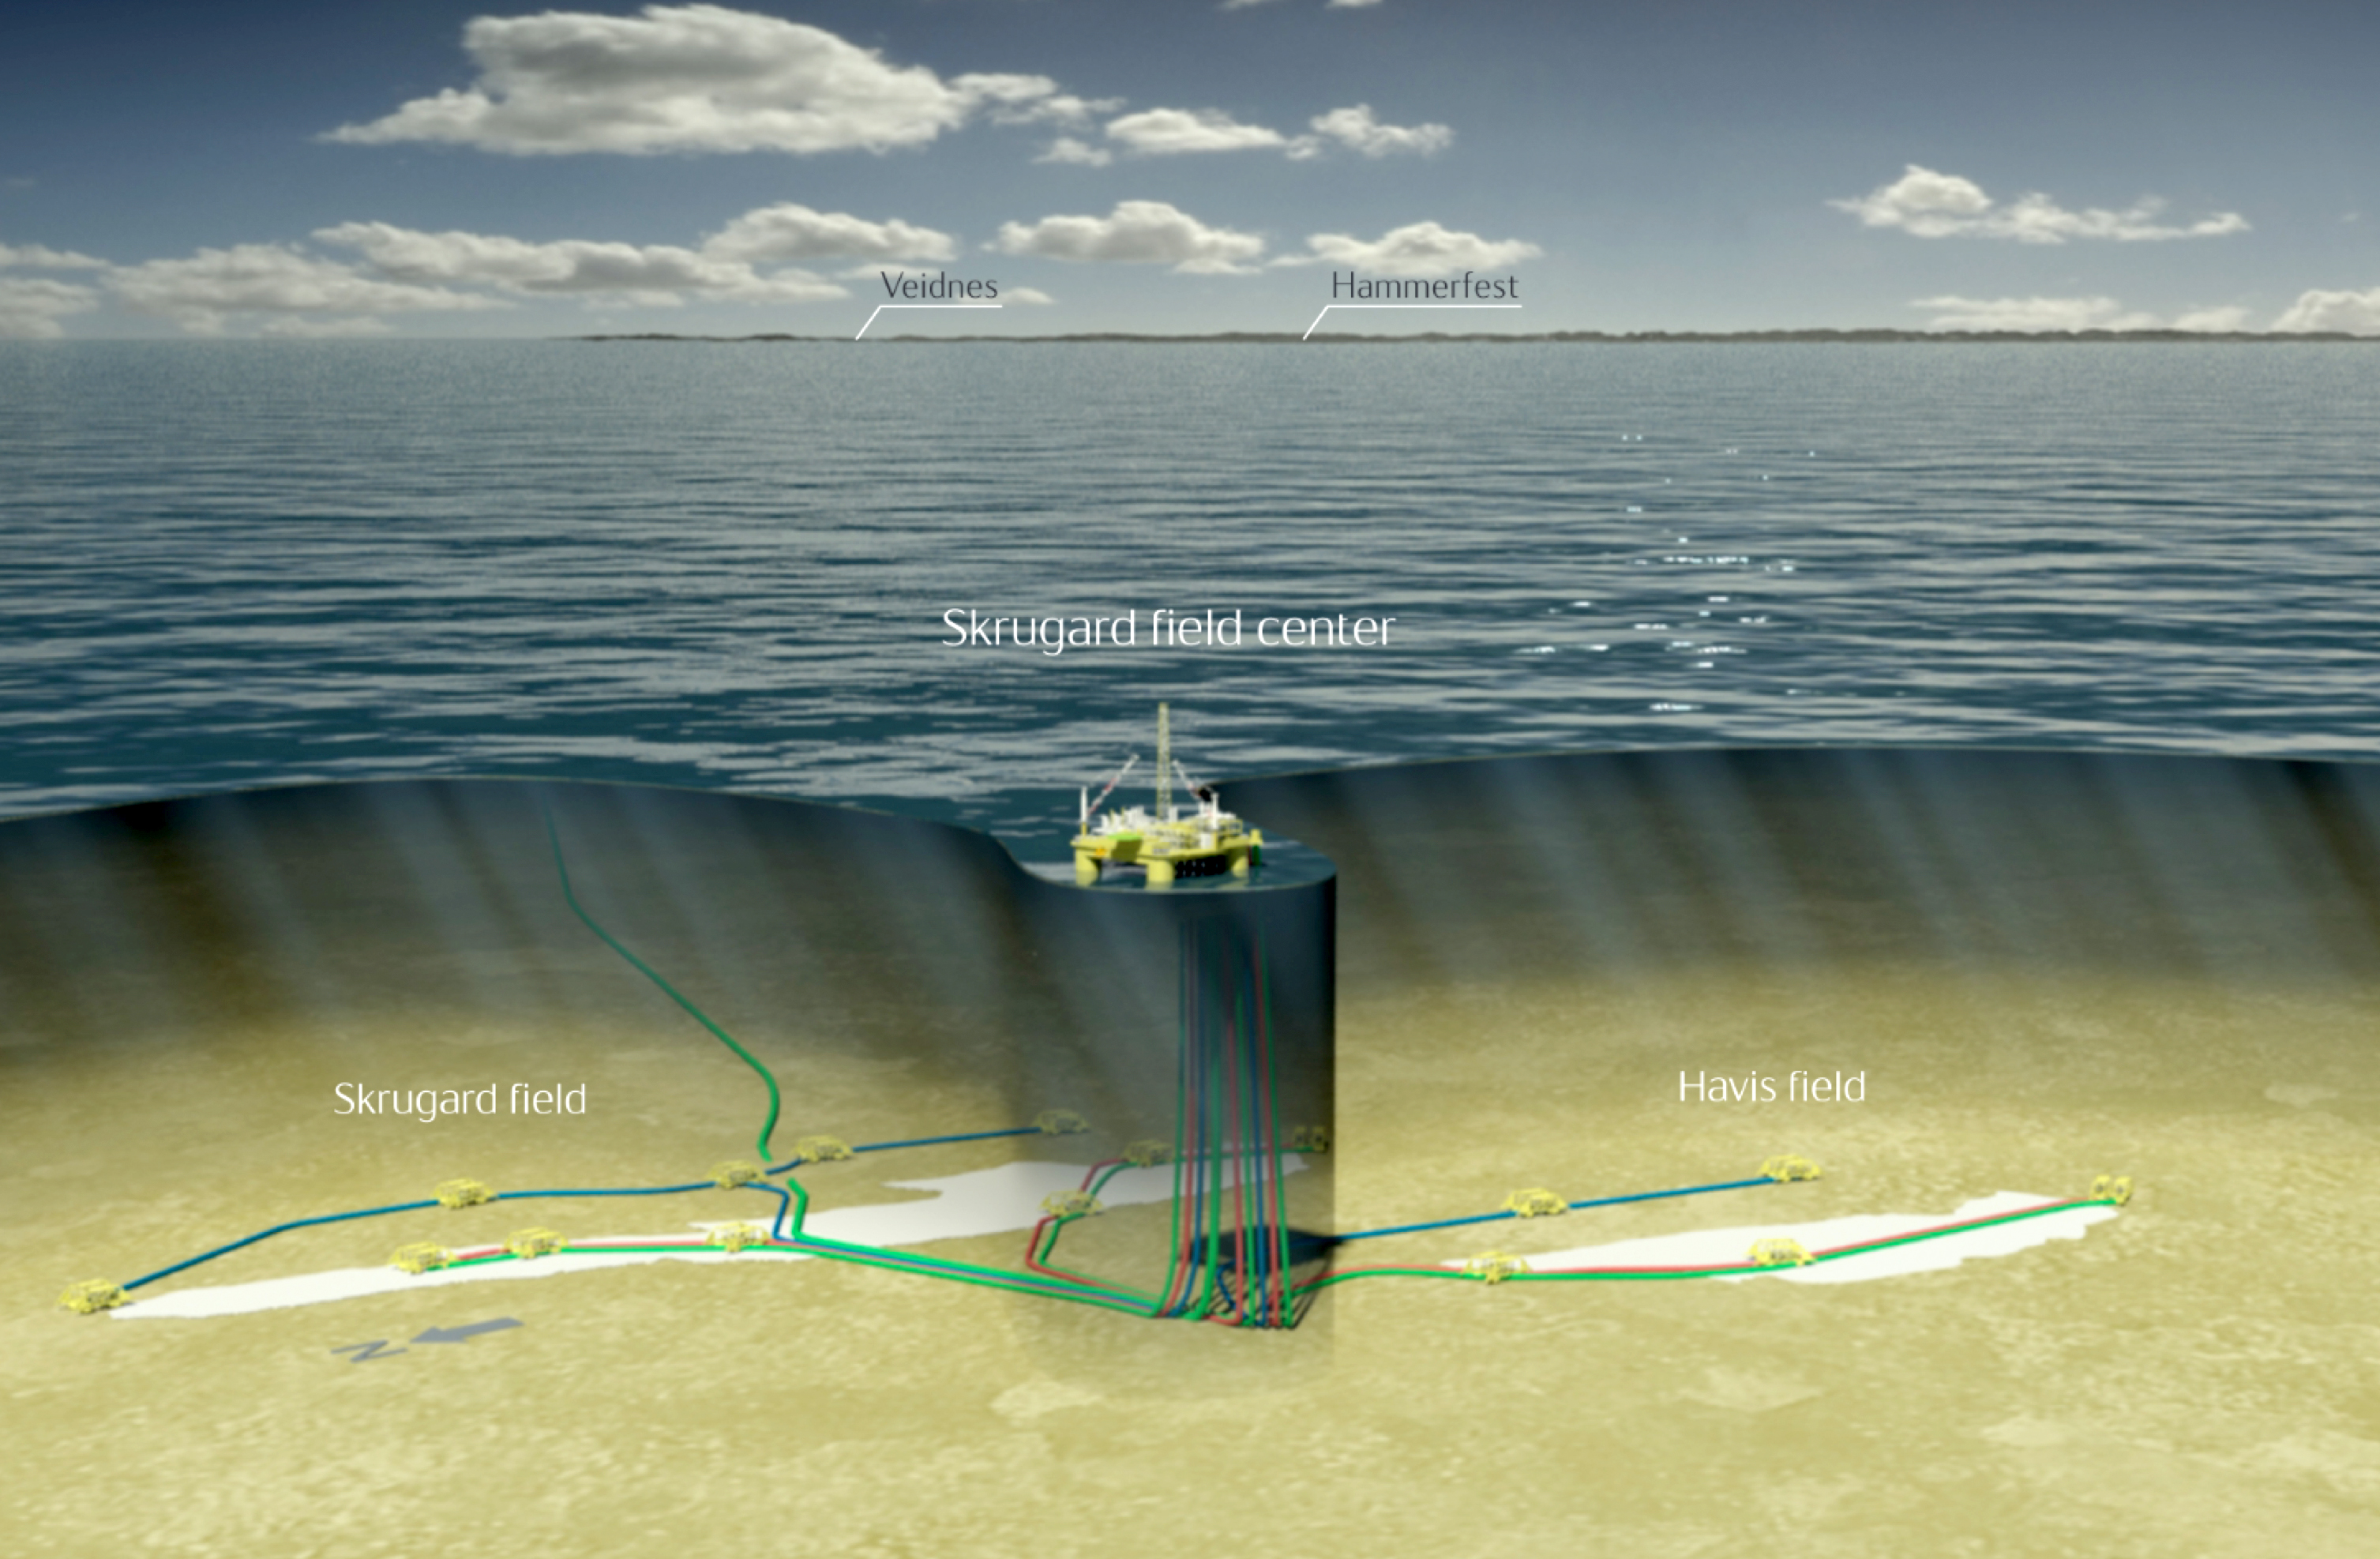 bressay field Statoil and shell considers all options to reduce costs for the development of the heavy crude oil offshore project, bressay, in the uk north sea.